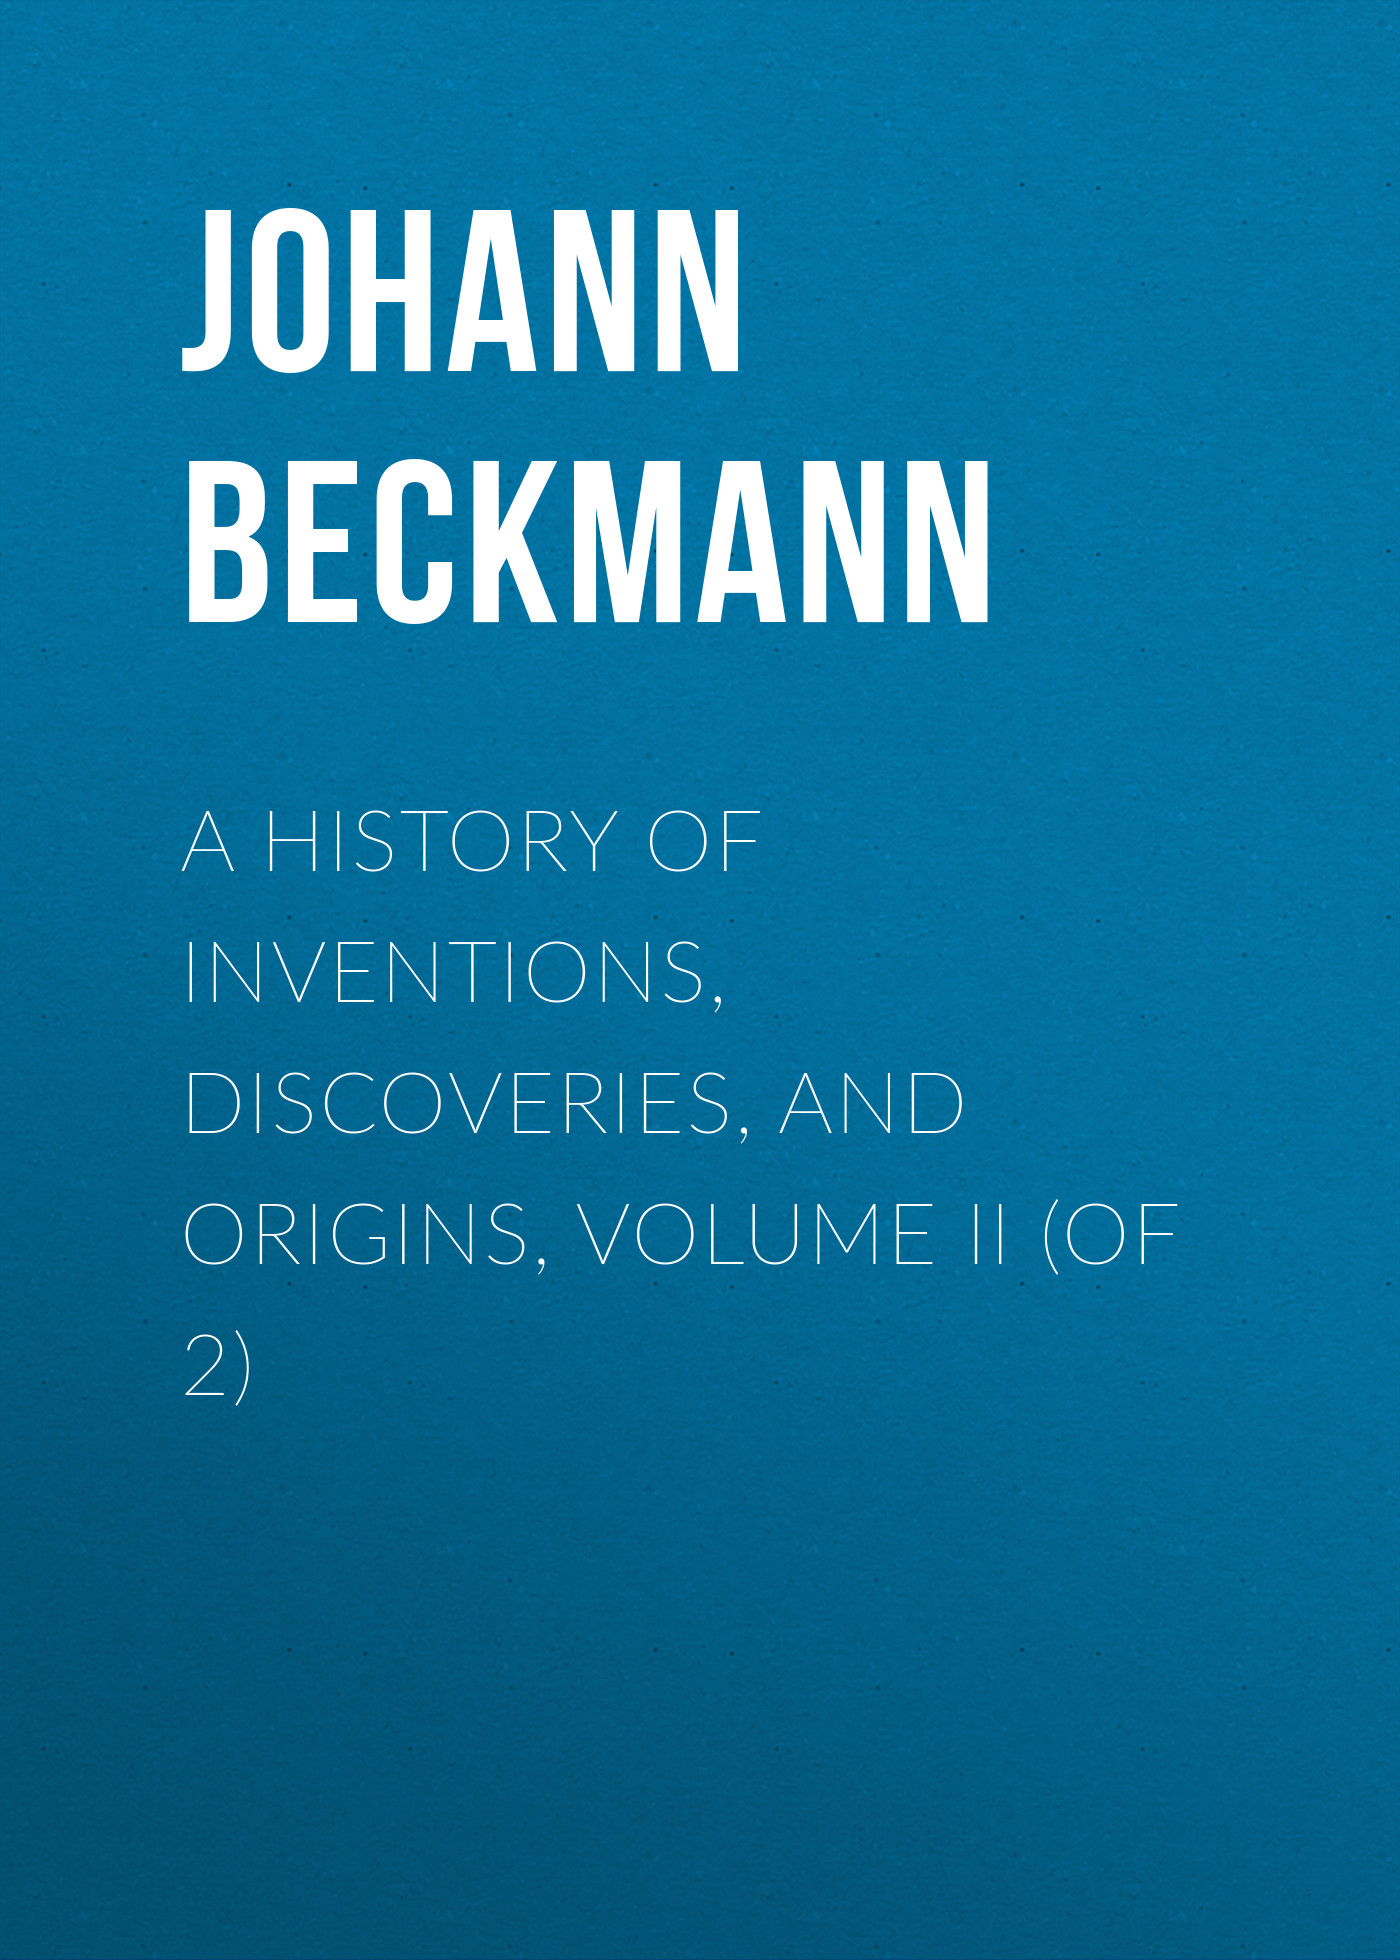 Johann Beckmann A History of Inventions, Discoveries, and Origins, Volume II (of 2) hyatt regency origins origins 30ml